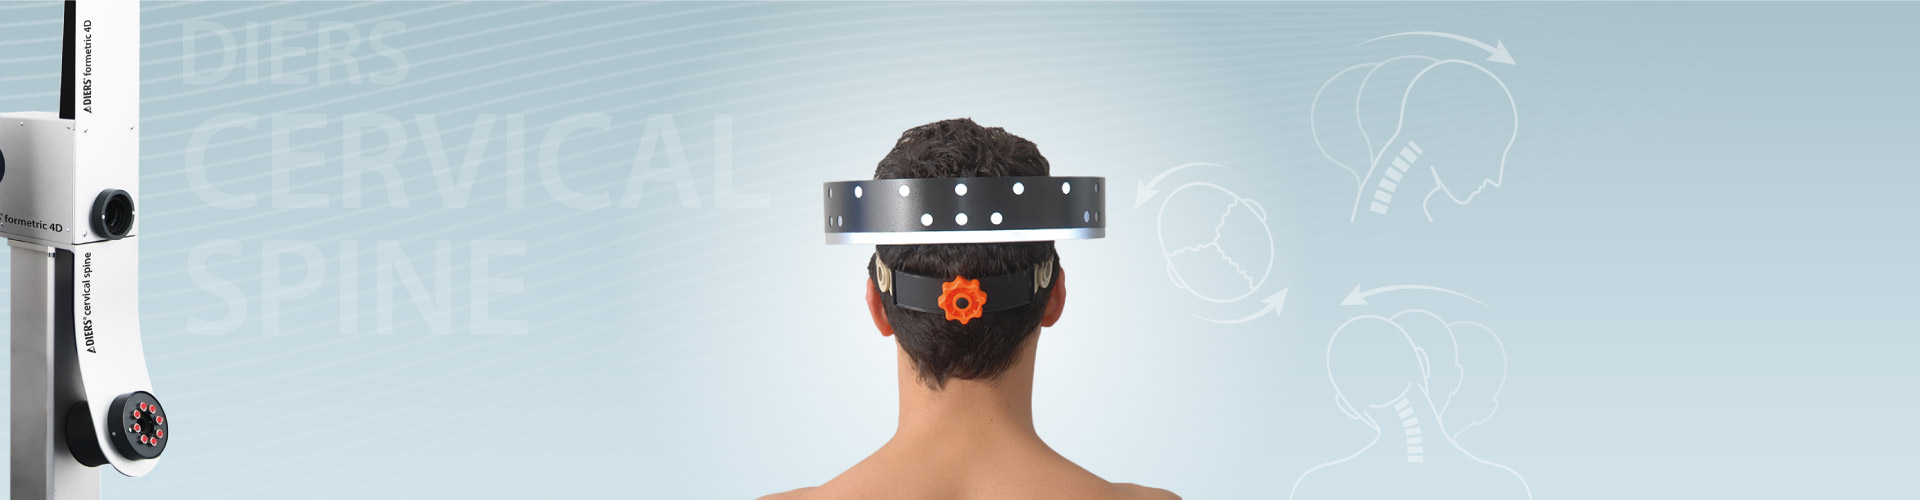 DIERS cervical spine: 3D-Recording of the Cervical Spine (Range of Motion)